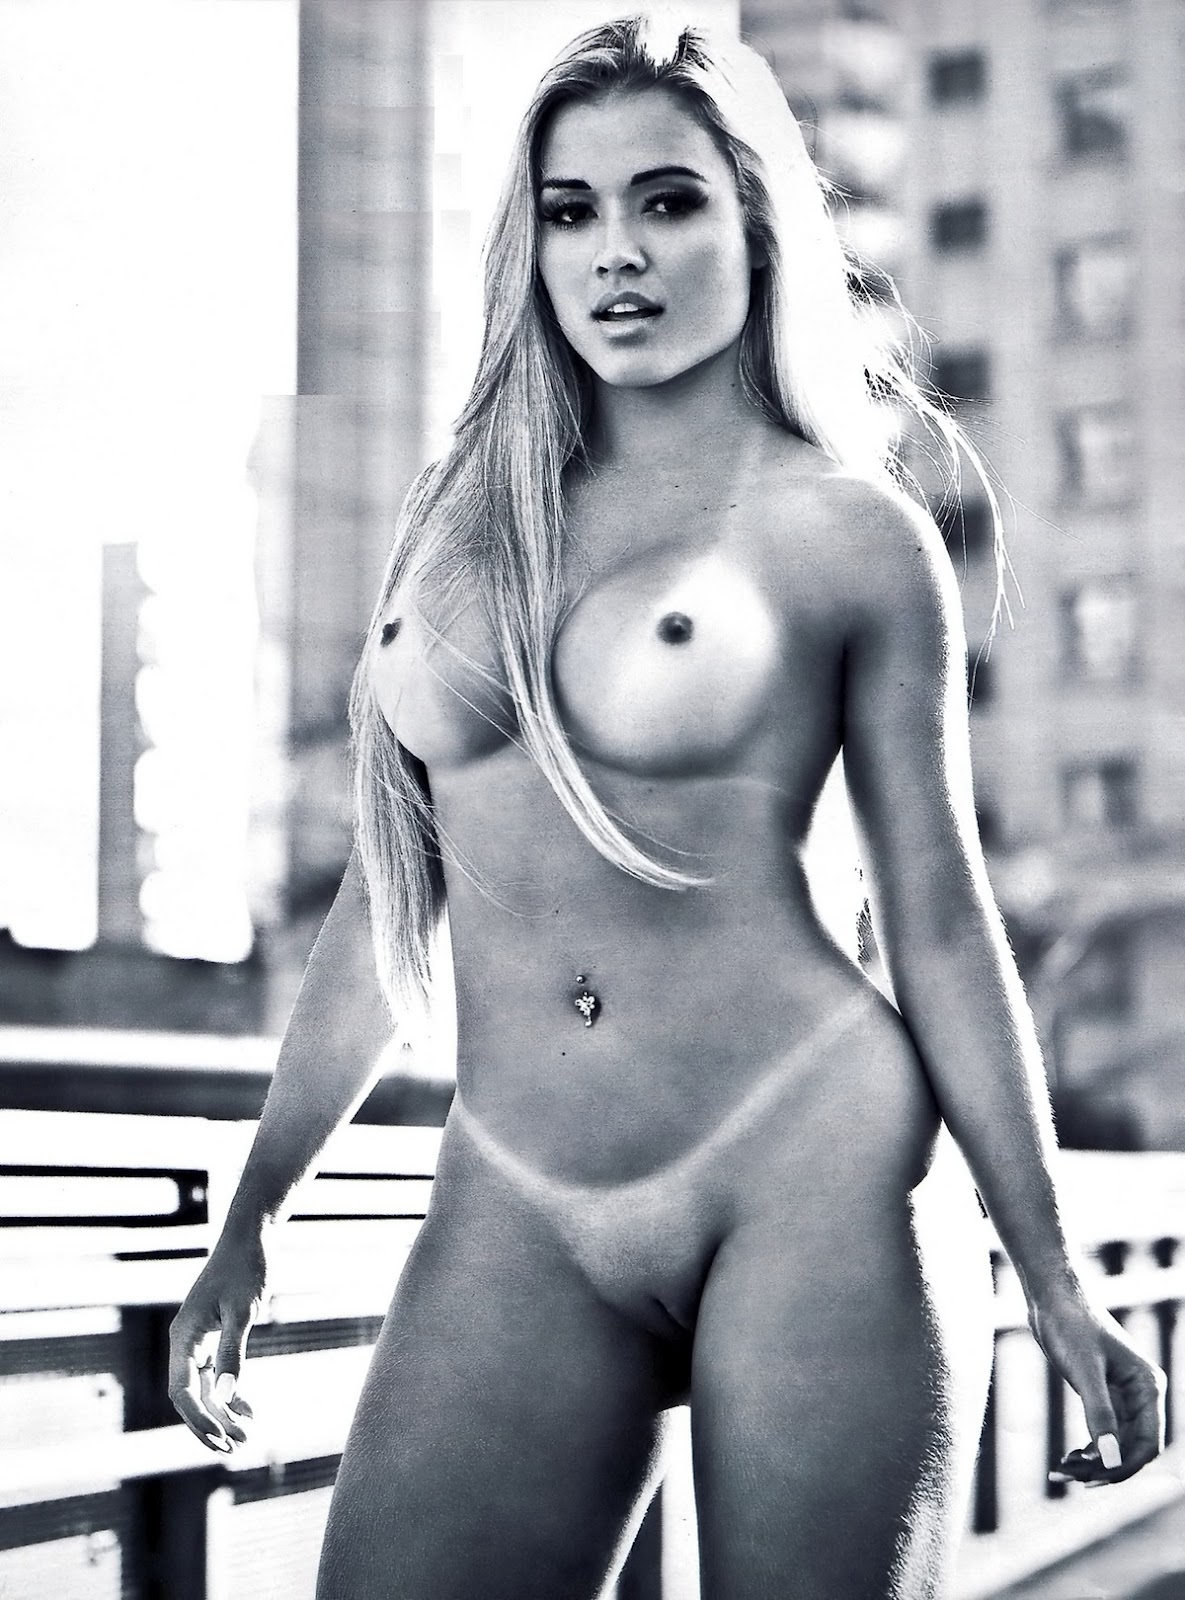 Aryane Steinkopf On The Cover Of Playboy Magazine Nsfw Pics